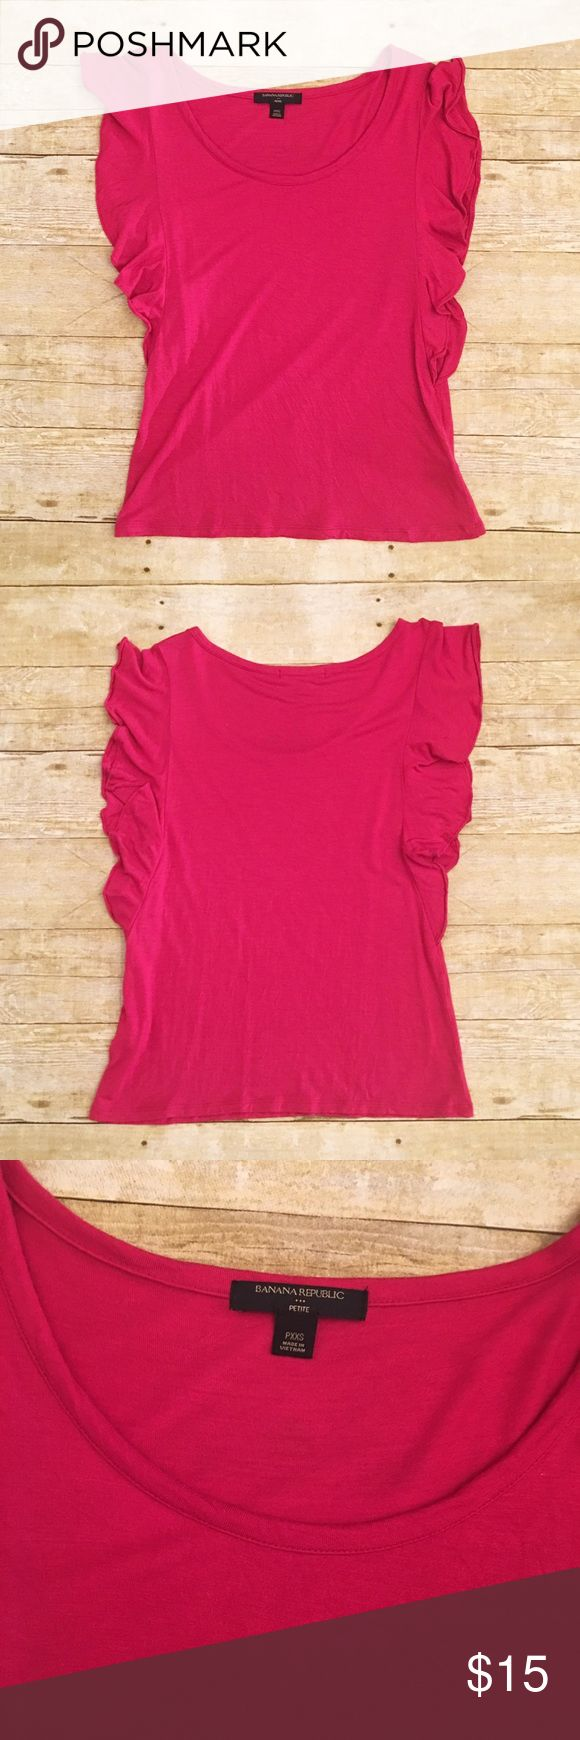 Pink Banana Republic ruffle short sleeve top, PXXS Very good used condition Banana Republic petite top. PXXS. Very soft(100%rayon). The ruffles as short sleeves is very flattering! Total length- approximately 21.5 inches, bust approximately 11 inches. Banana Republic Tops Tees - Short Sleeve